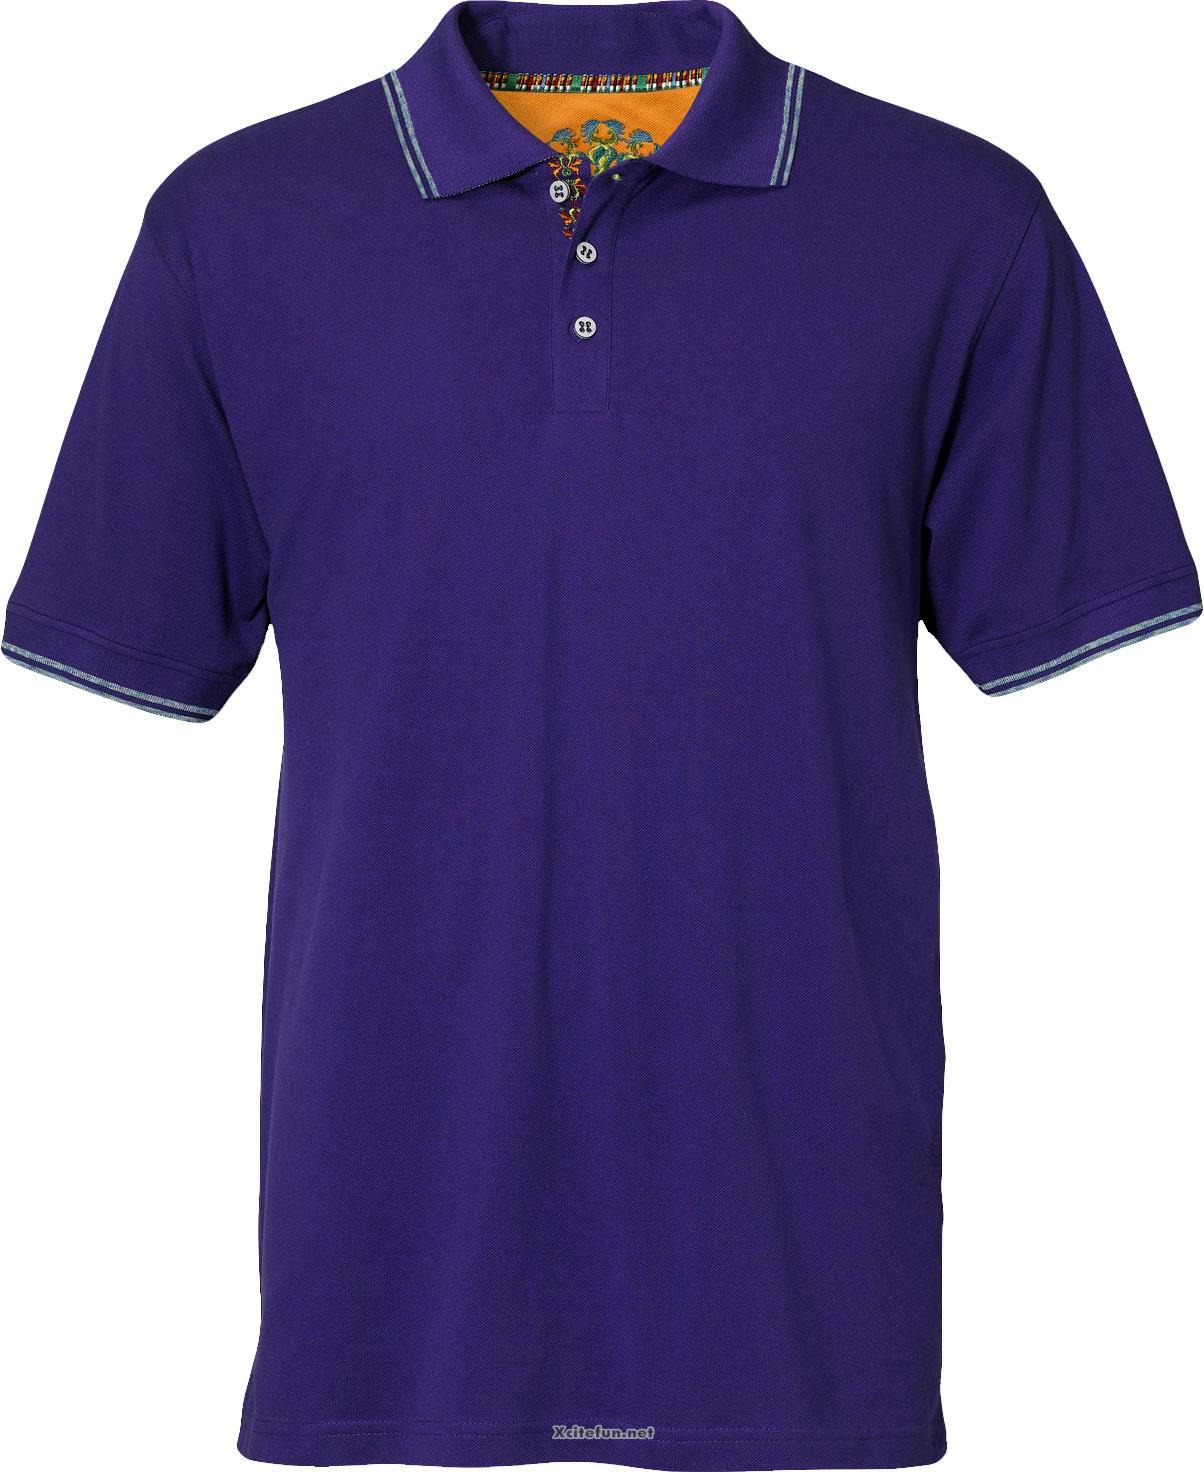 Polo Summer T Shirts For Boys